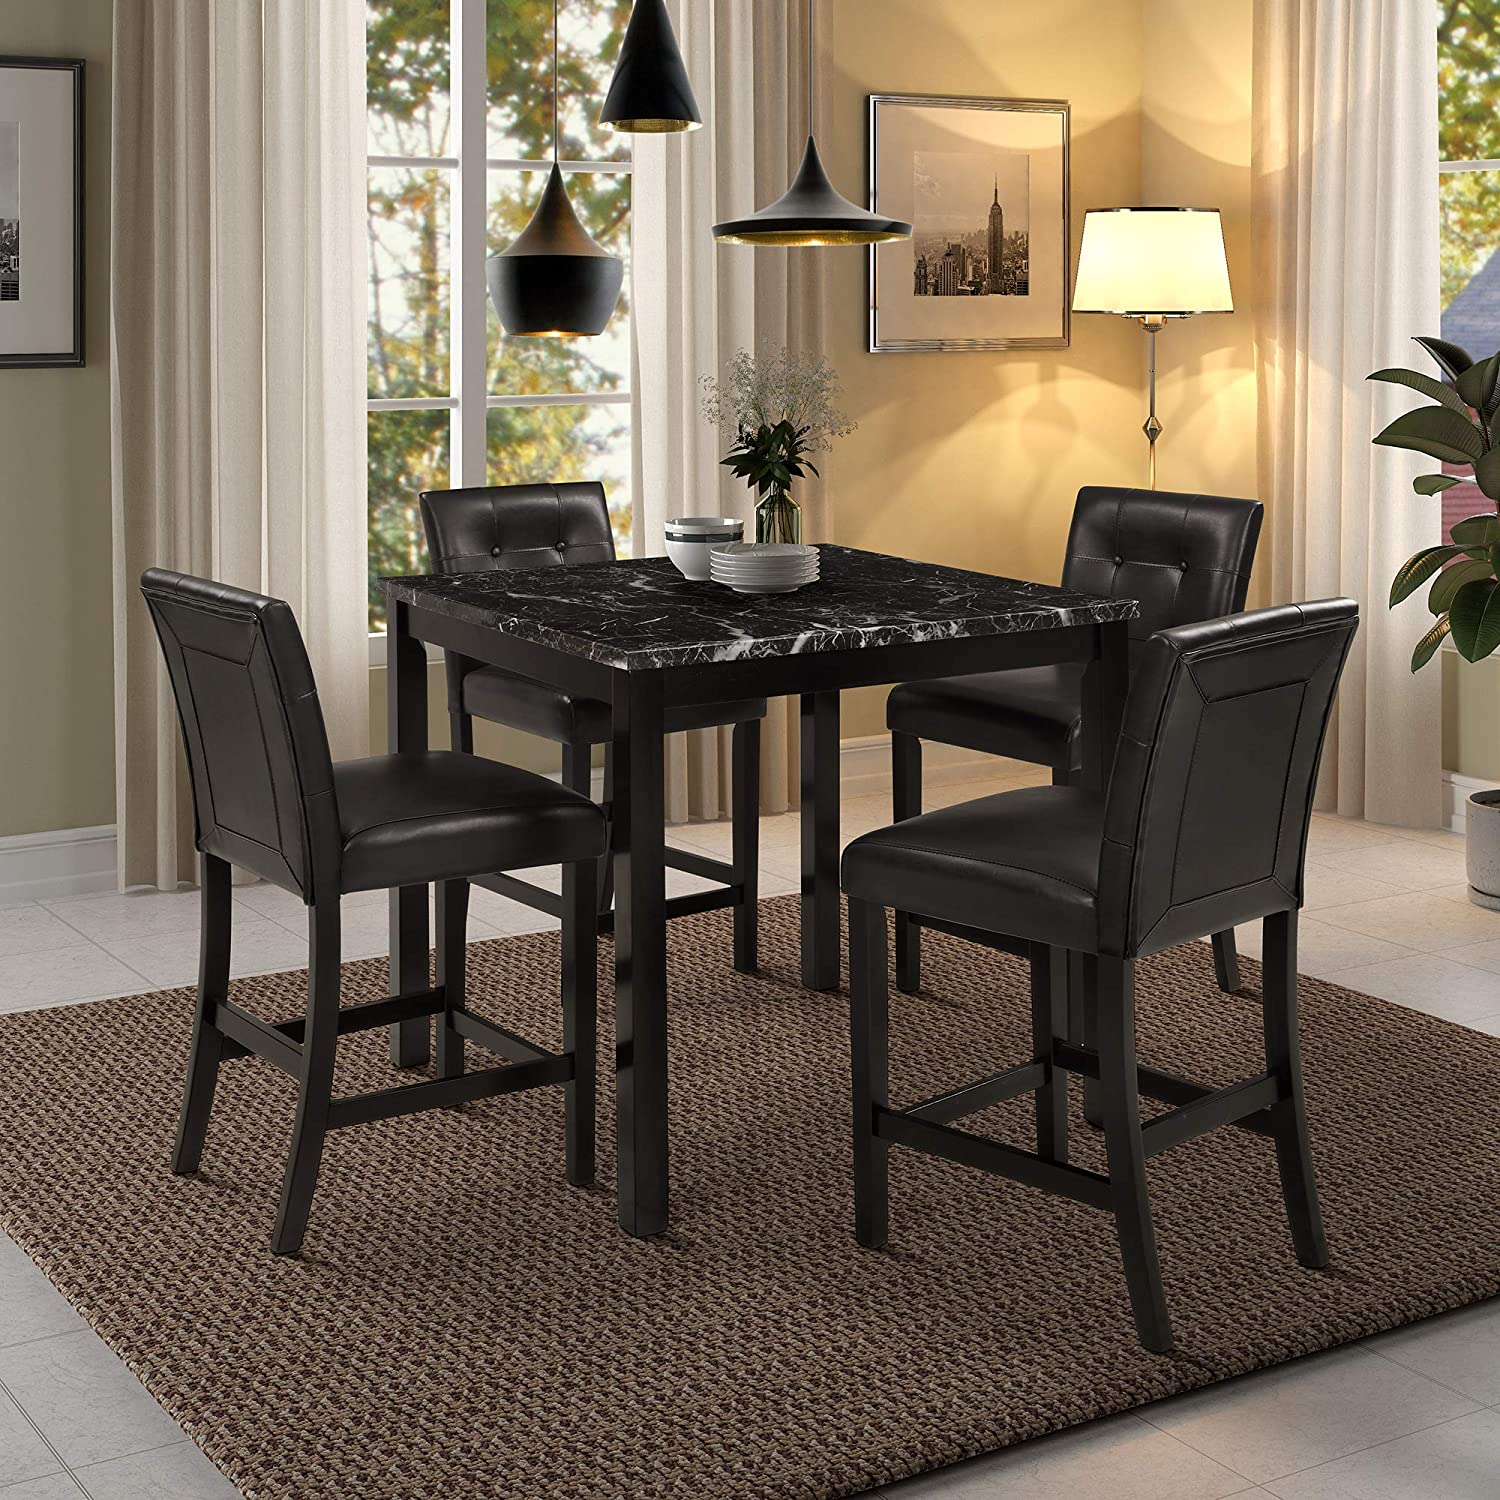 Amazon Com Harper Bright Designs 5 Piece Kitchen Table Set Faux Marble Top Counter Height Dining Table Set With 4 Black Leather Upholstered Chairs Black Table Chair Sets